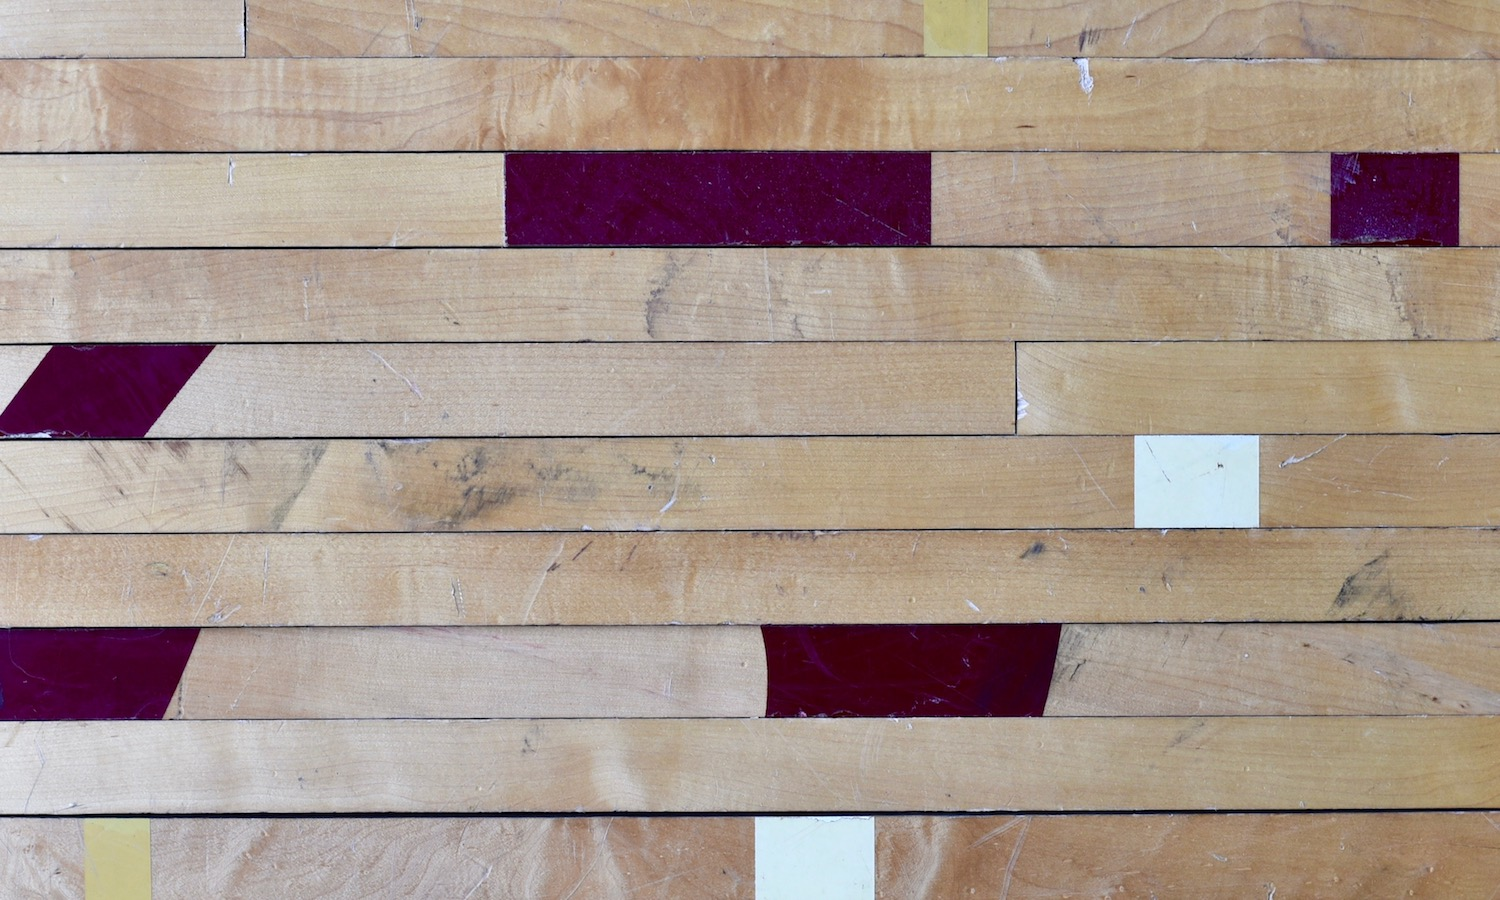 Maple Gym Floor Brick Board Give Us A Brief Description Of Your Project